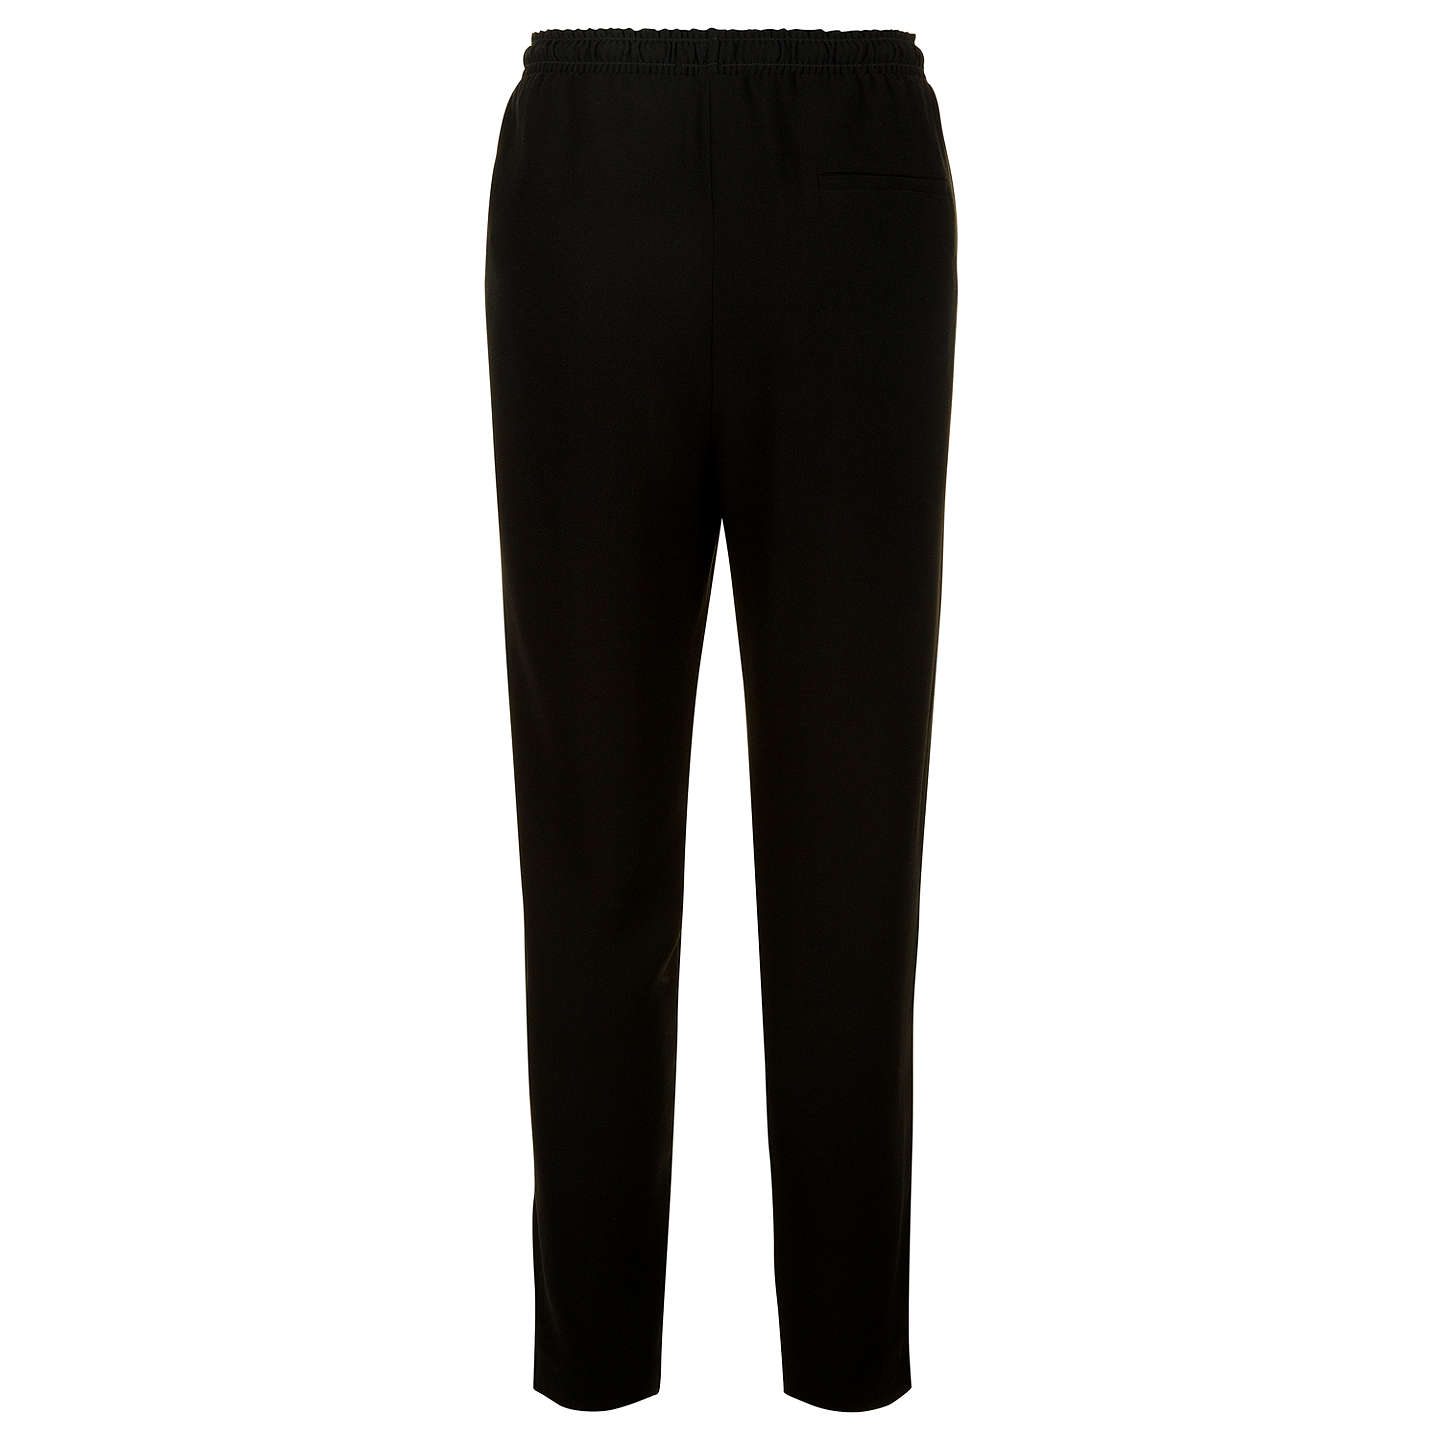 BuyJaeger Crepe Drawstring Trousers, Black, 6 Online at johnlewis.com